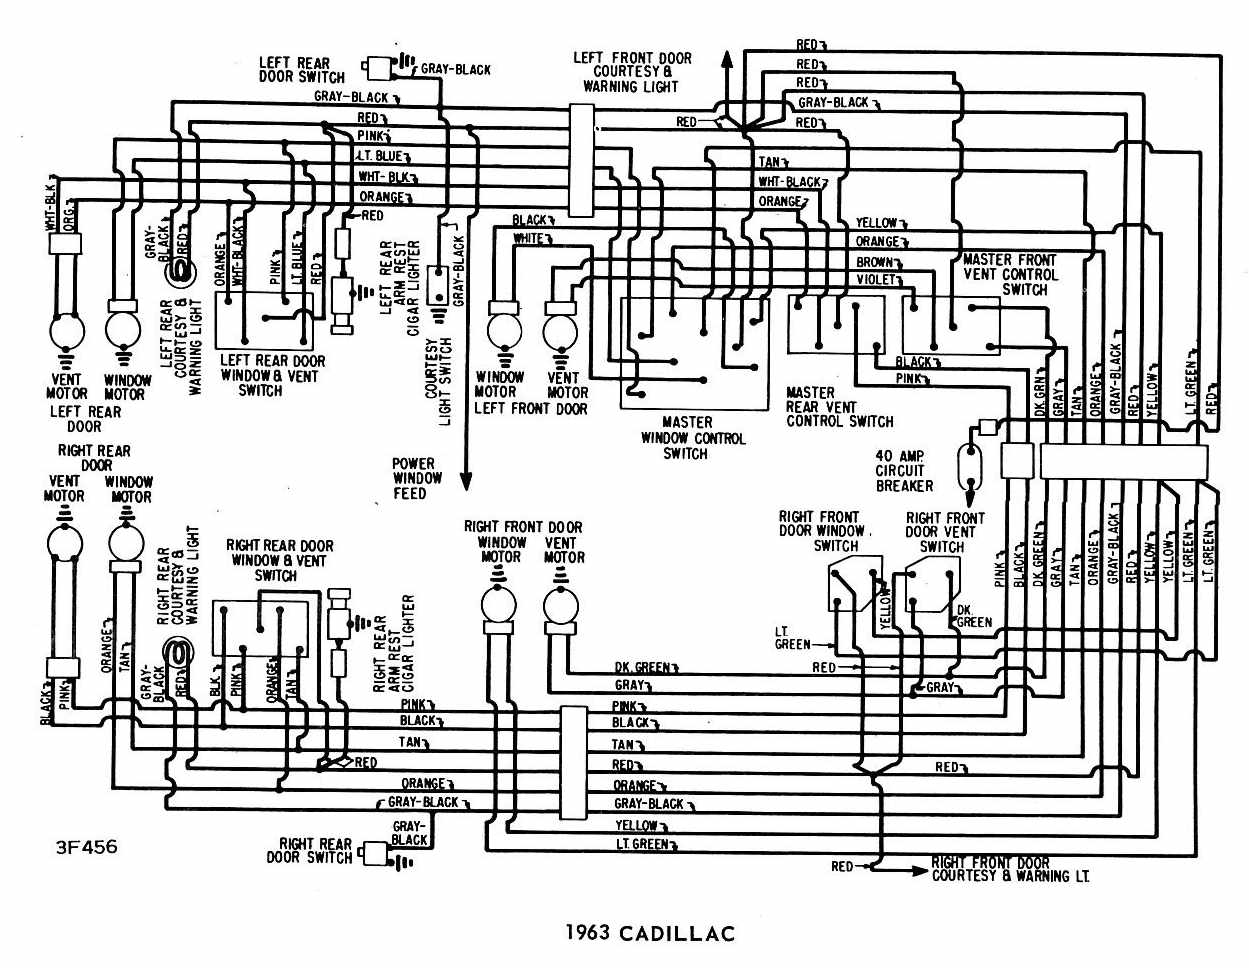 1970 Cadillac Wiring Diagrams Diagram Data For 1965 Falcon 66 Lincoln 1966 Heater